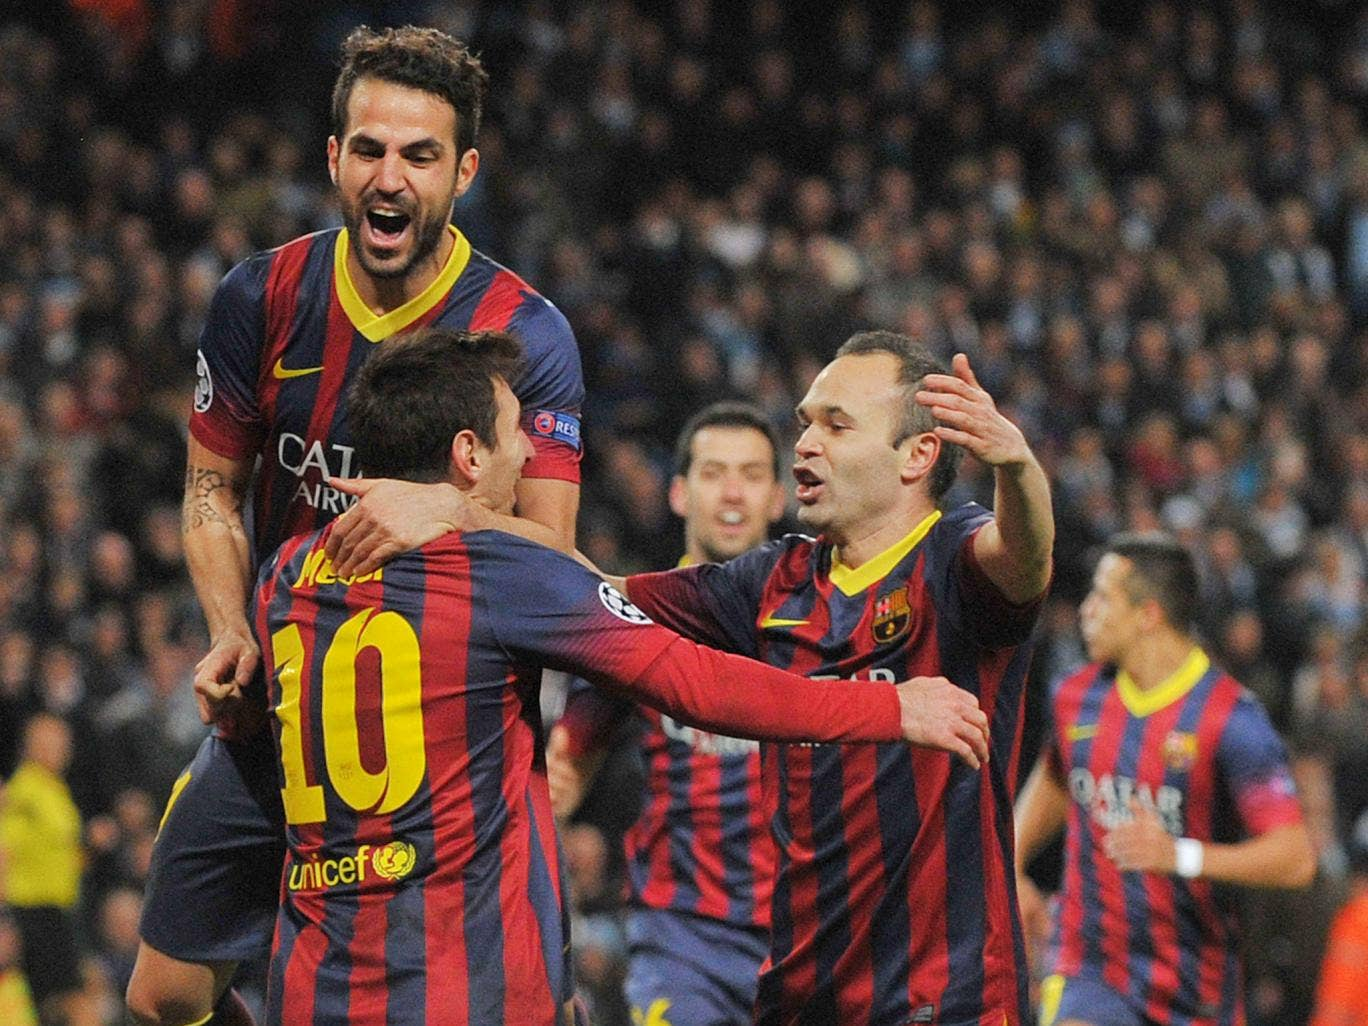 Cesc Fabregas and Andres Iniesta celebrate with Lionel Messi in their 2-0 win over Manchester City